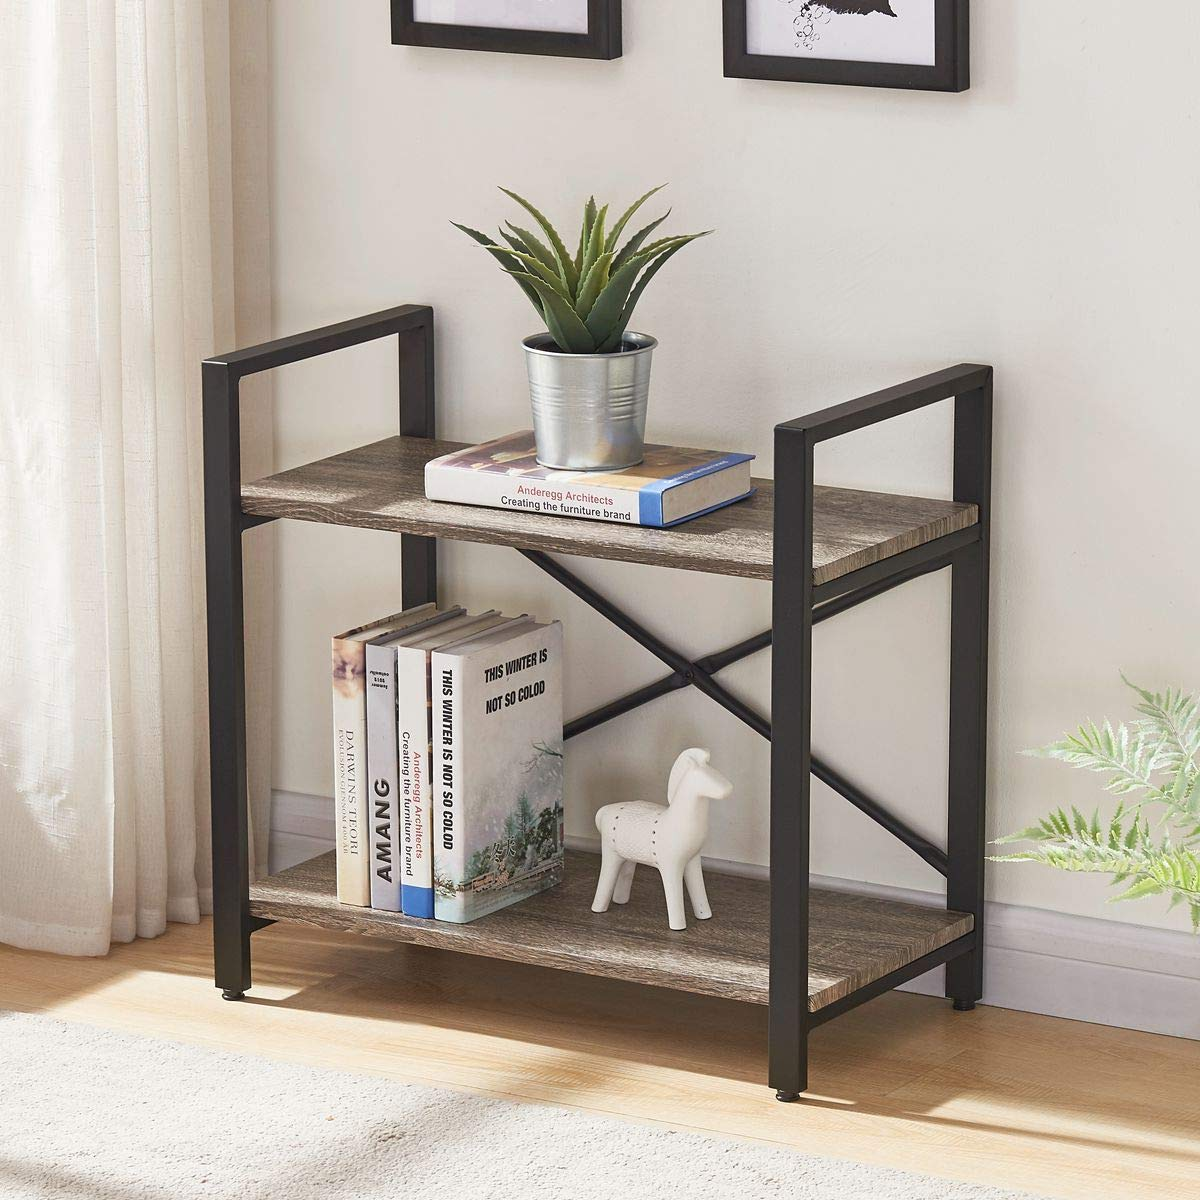 BON AUGURE Small Bookshelf for Small Space, 2 Shelf Low Metal Bookcase, Industrial Shelving Unit with Short Shelves Dark Gray Oak